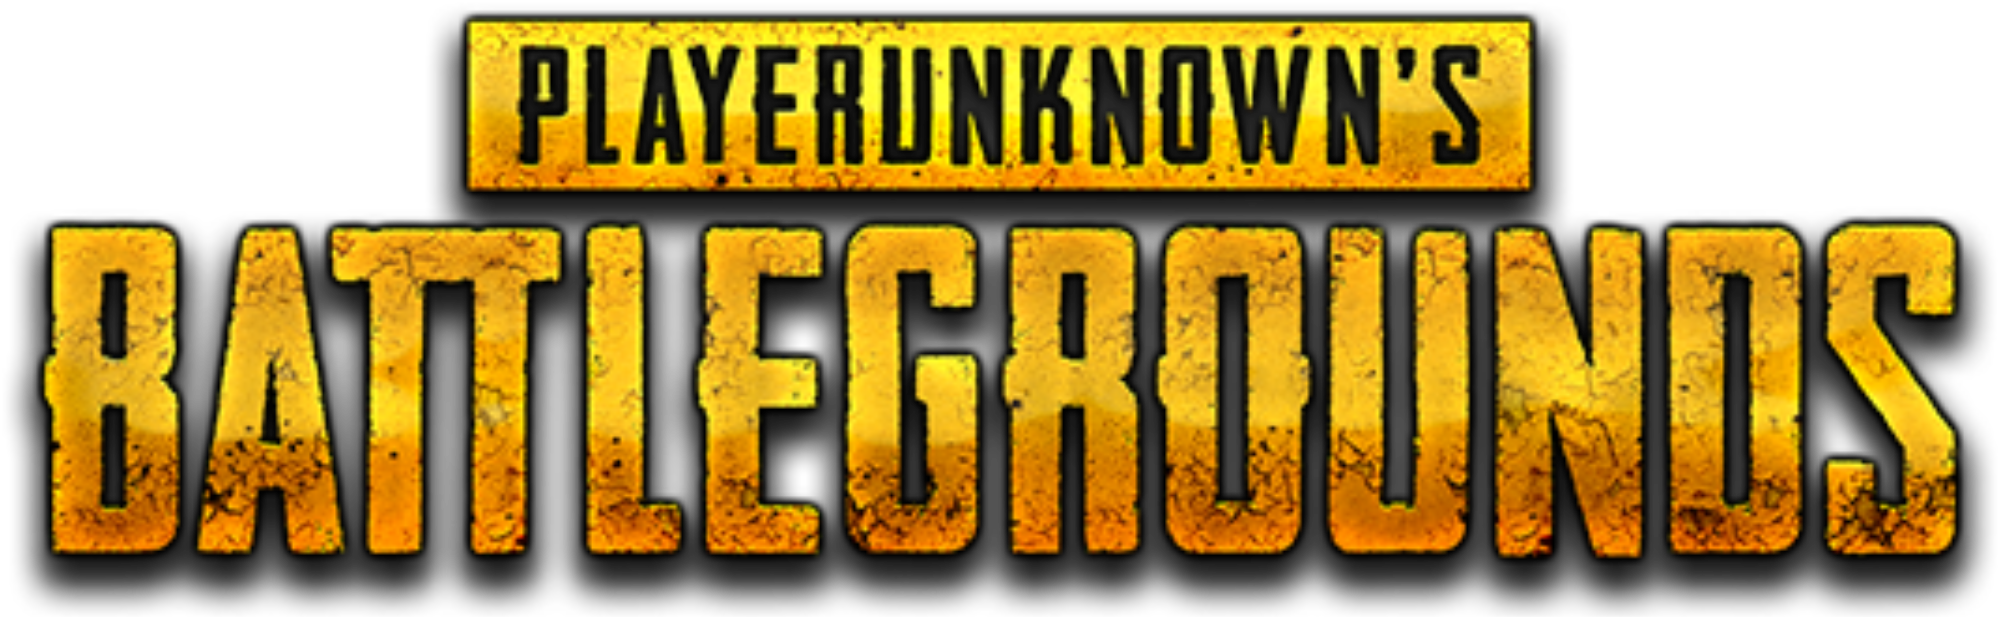 Pubg png. Will player unkown s